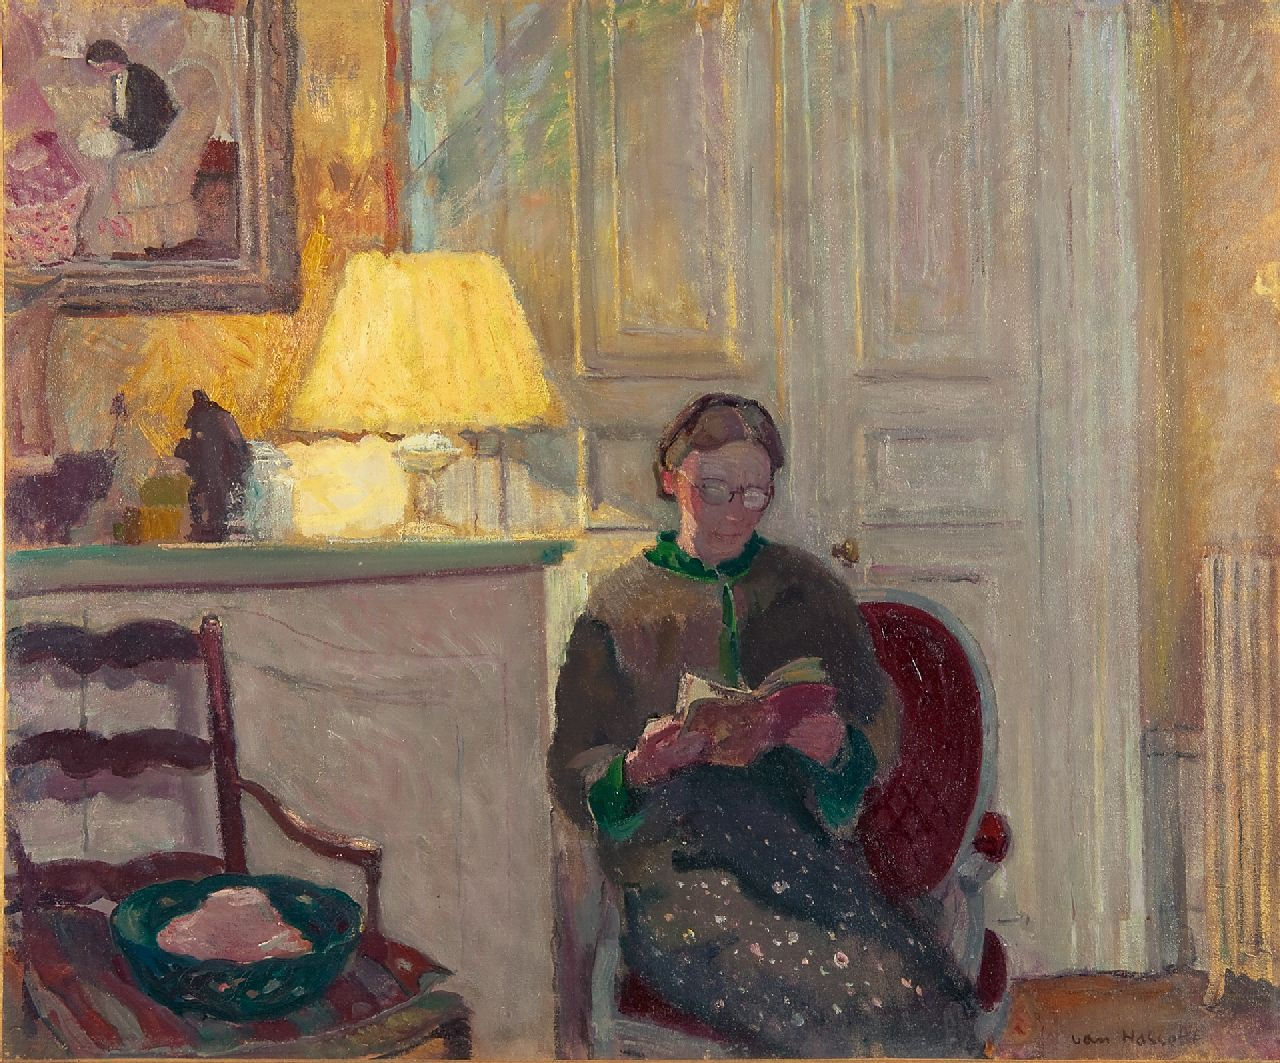 Willem van Hasselt | A woman reading in a Paris interior, oil on canvas, 60.0 x 73.0 cm, signed l.r.